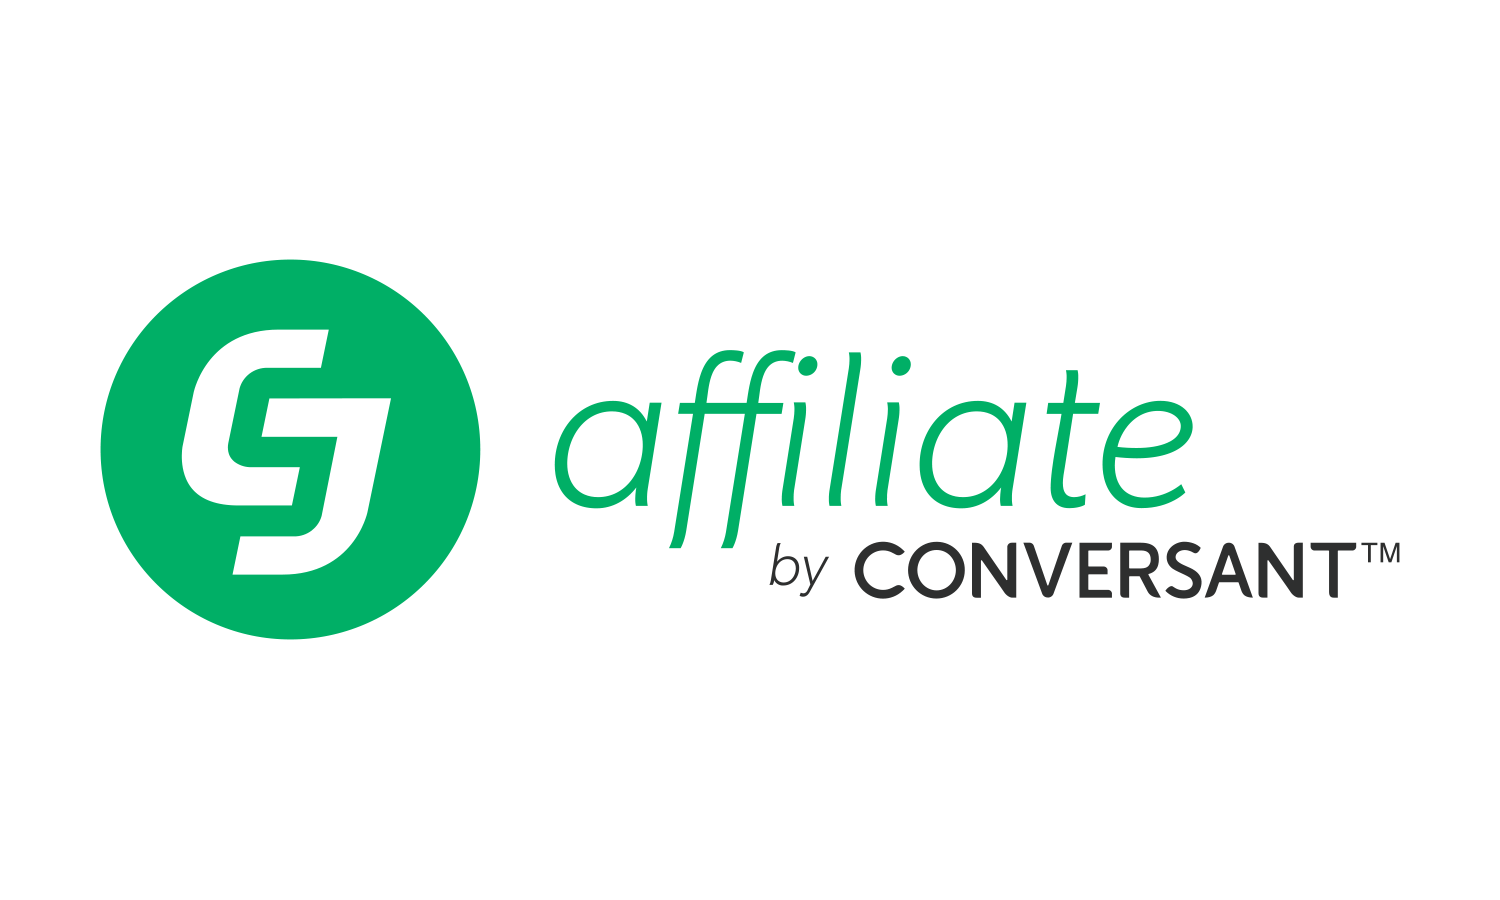 cj conversant commission junction affiliate logo marketing network